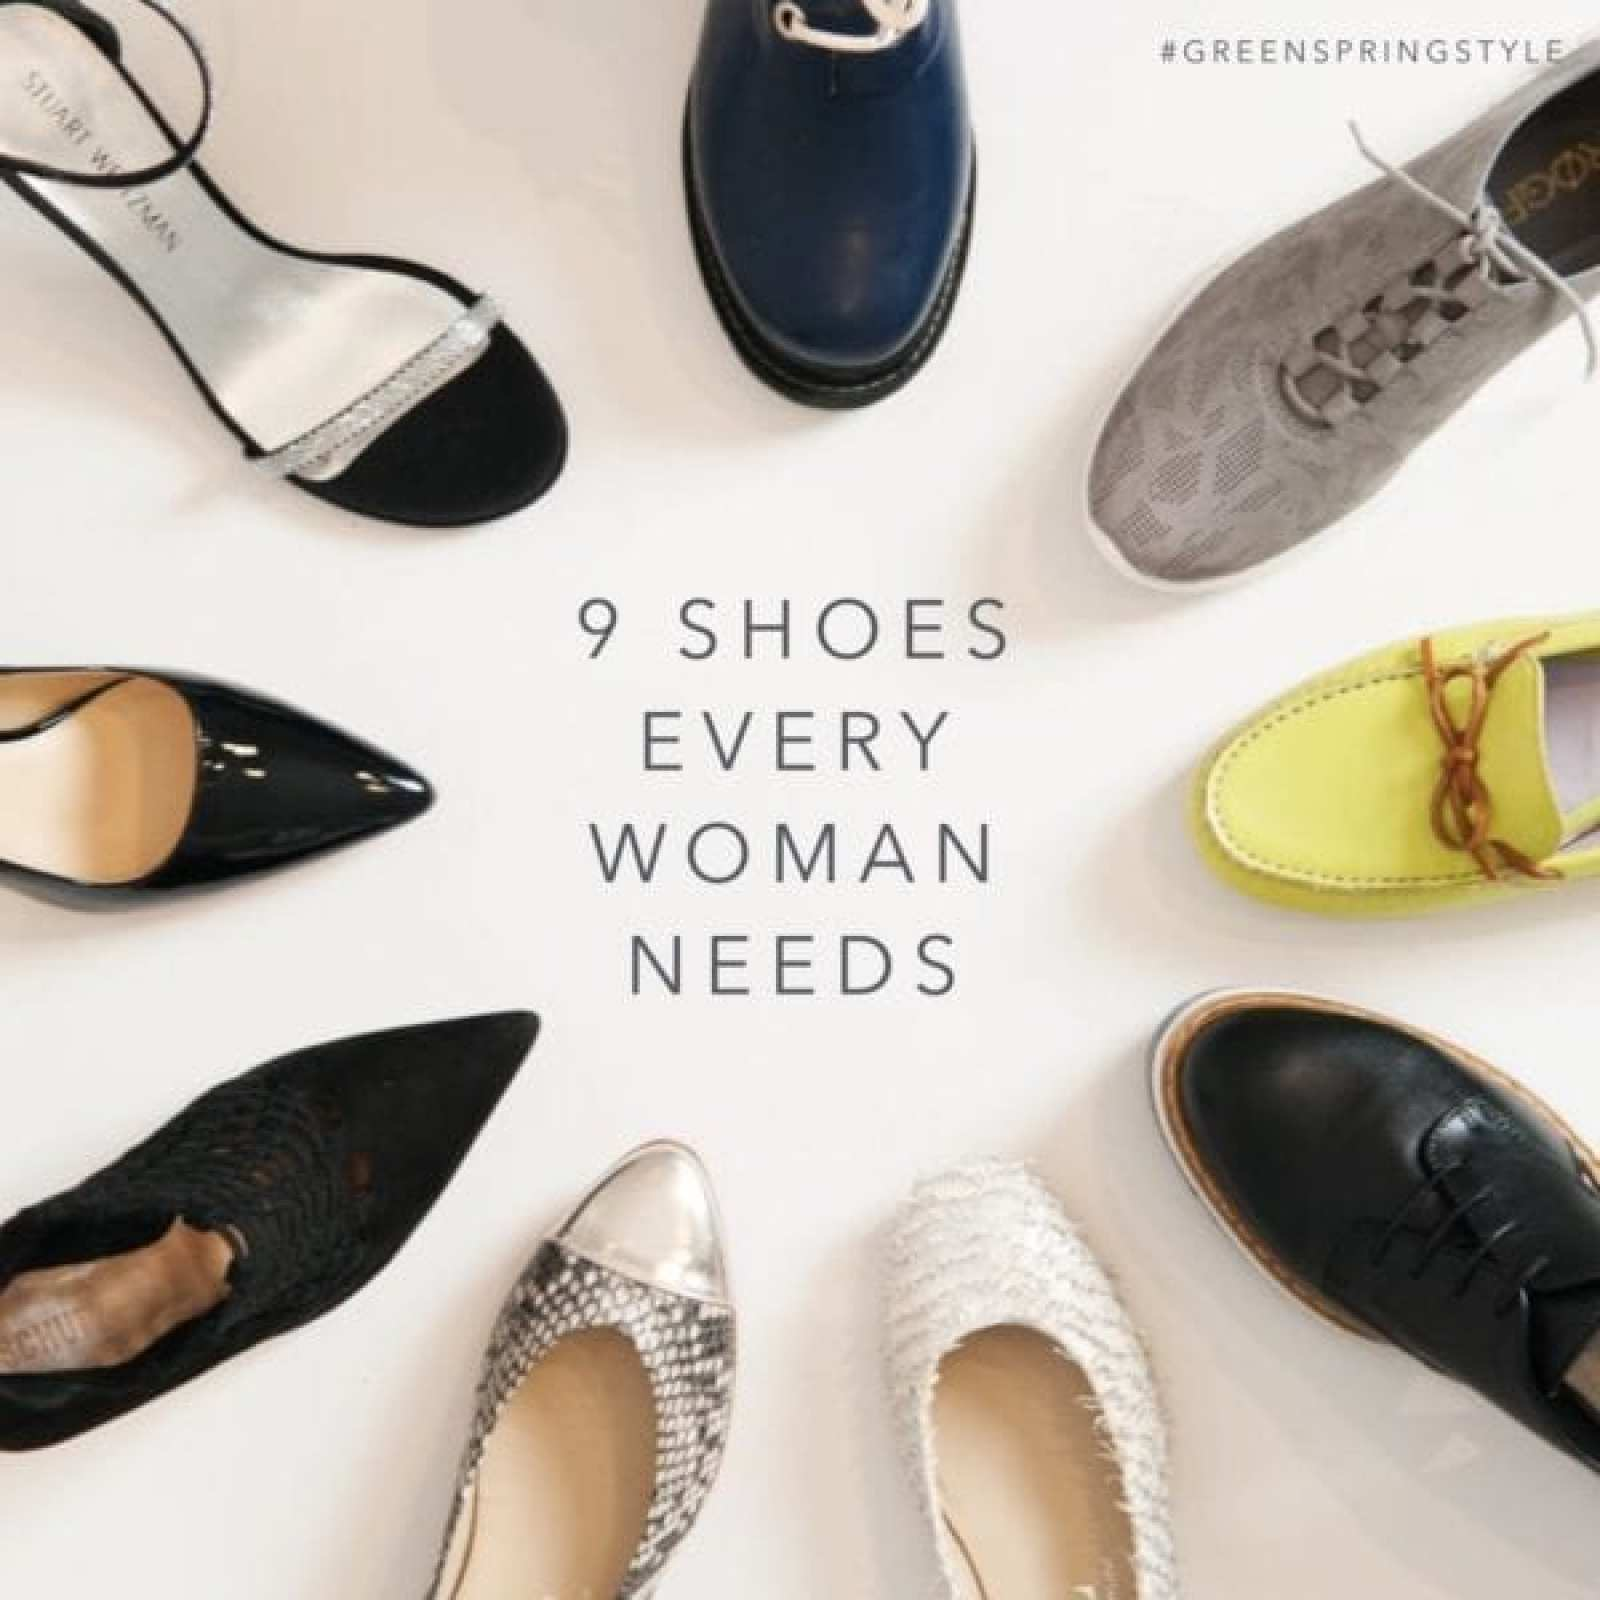 Shoes Every Woman Should Own - Matava Shoes